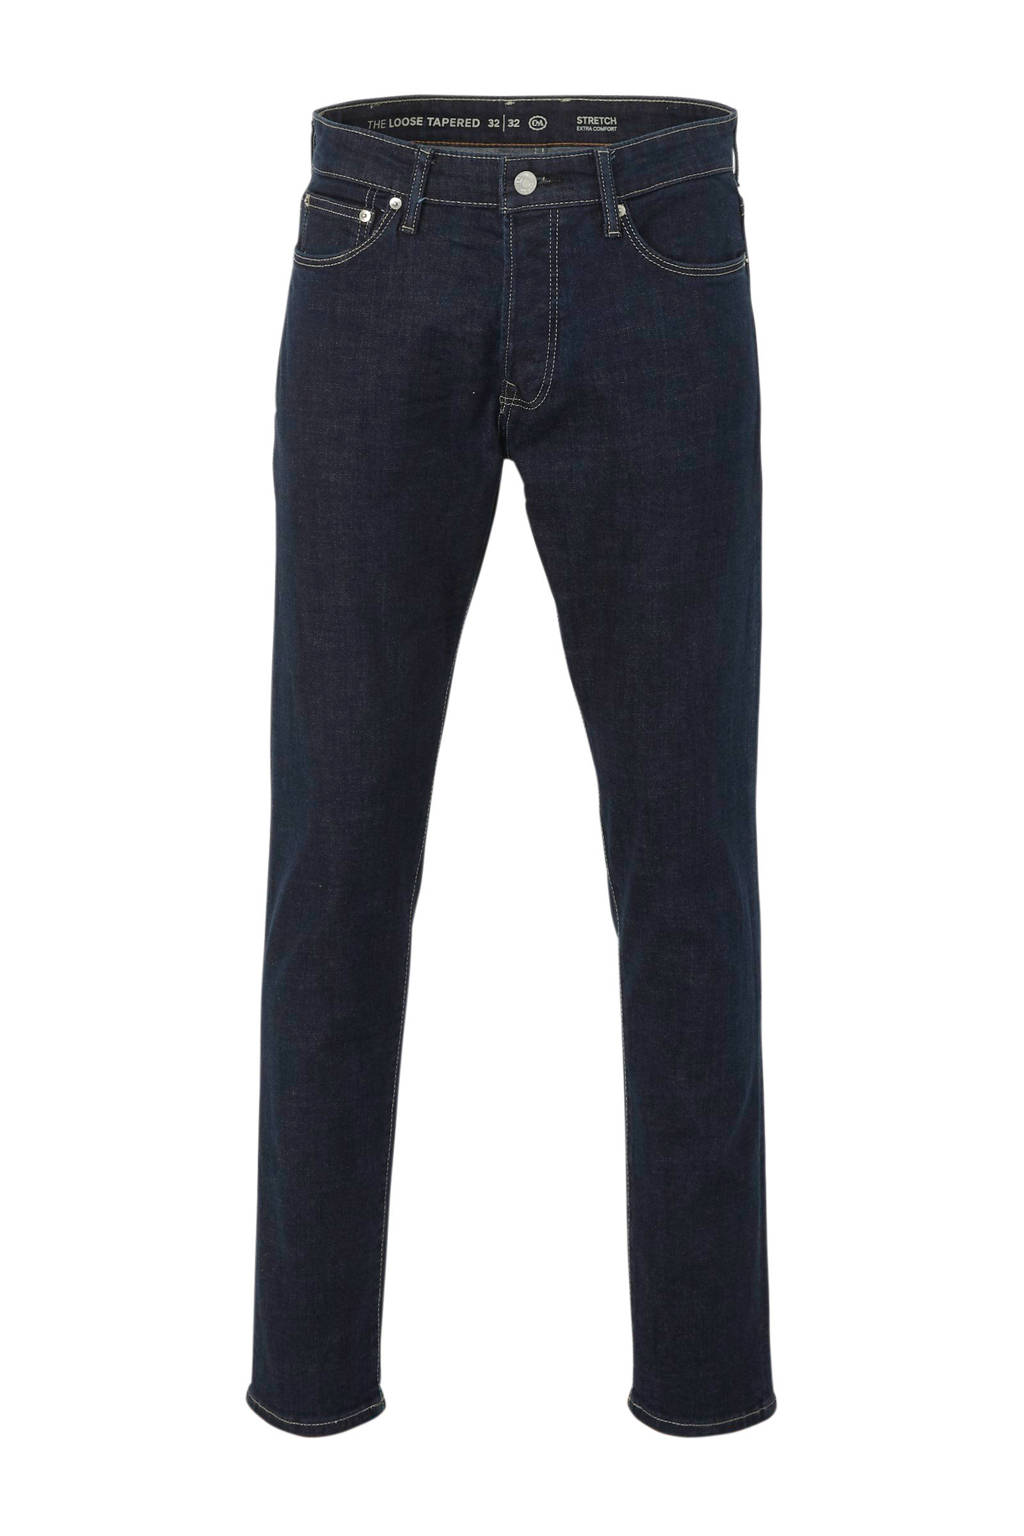 C&A The Denim loose fit jeans donkerblauw, Donkerblauw